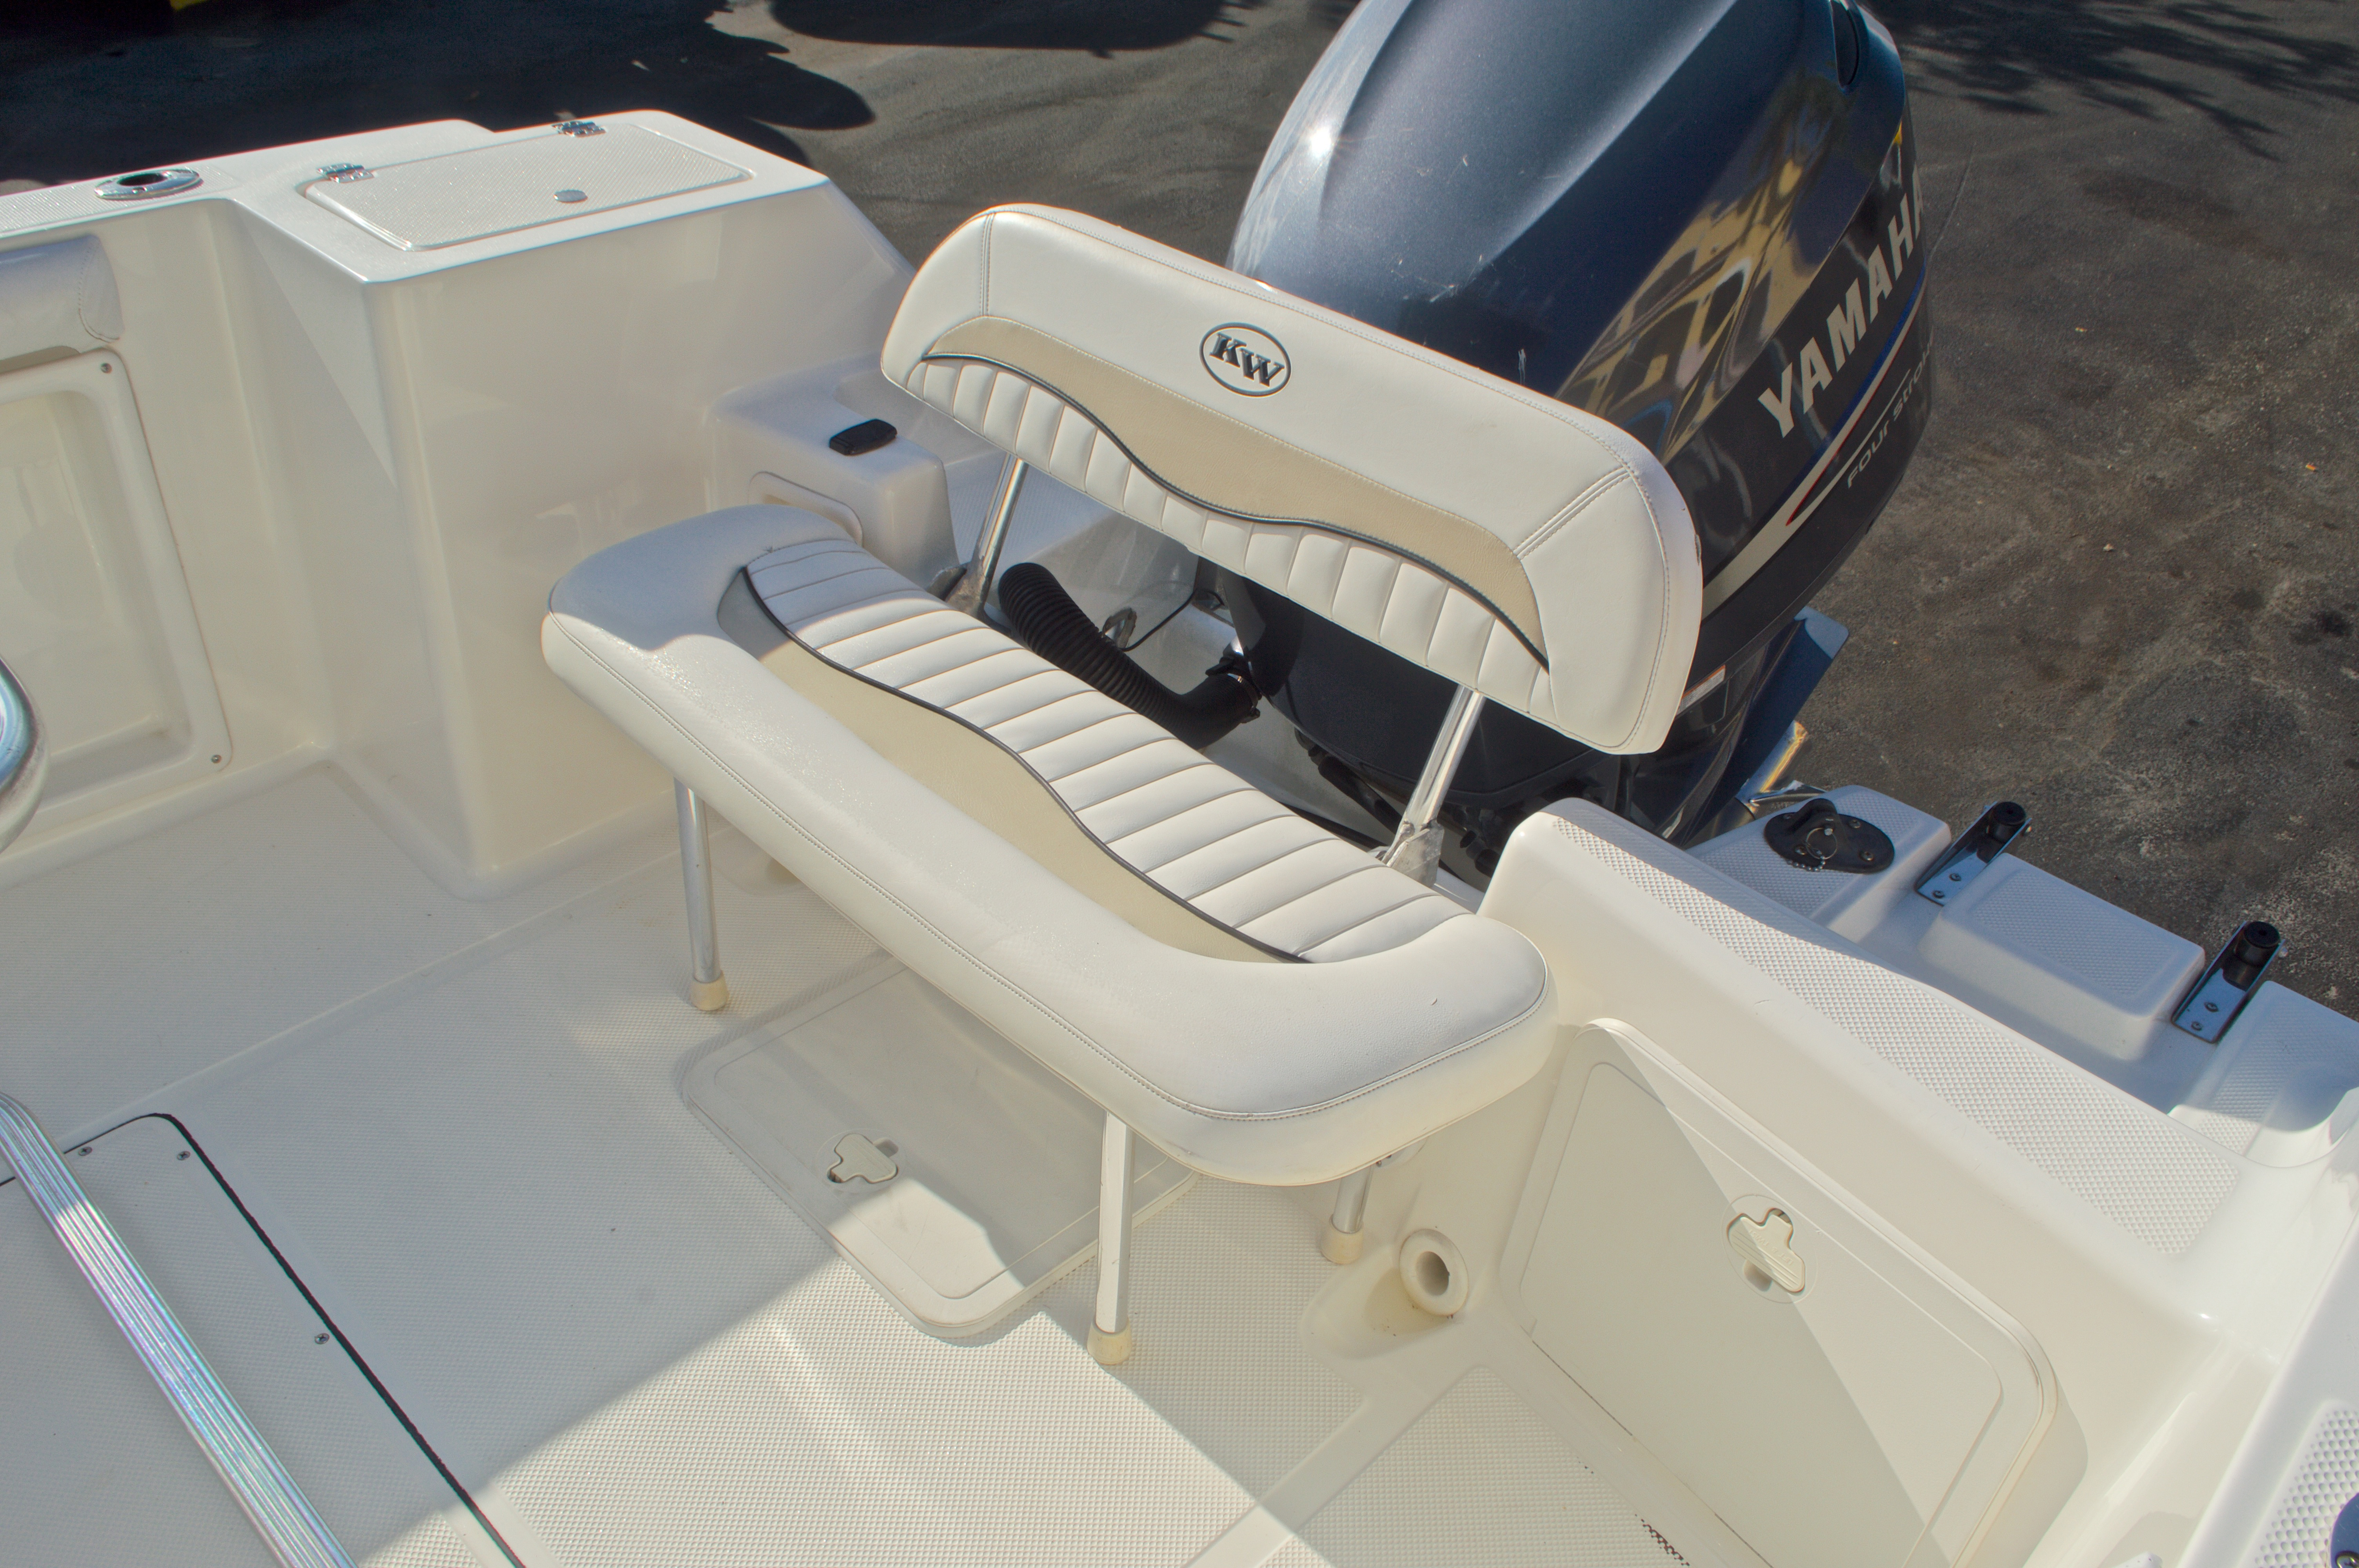 Thumbnail 11 for Used 2009 Key West 225 Center Console boat for sale in West Palm Beach, FL